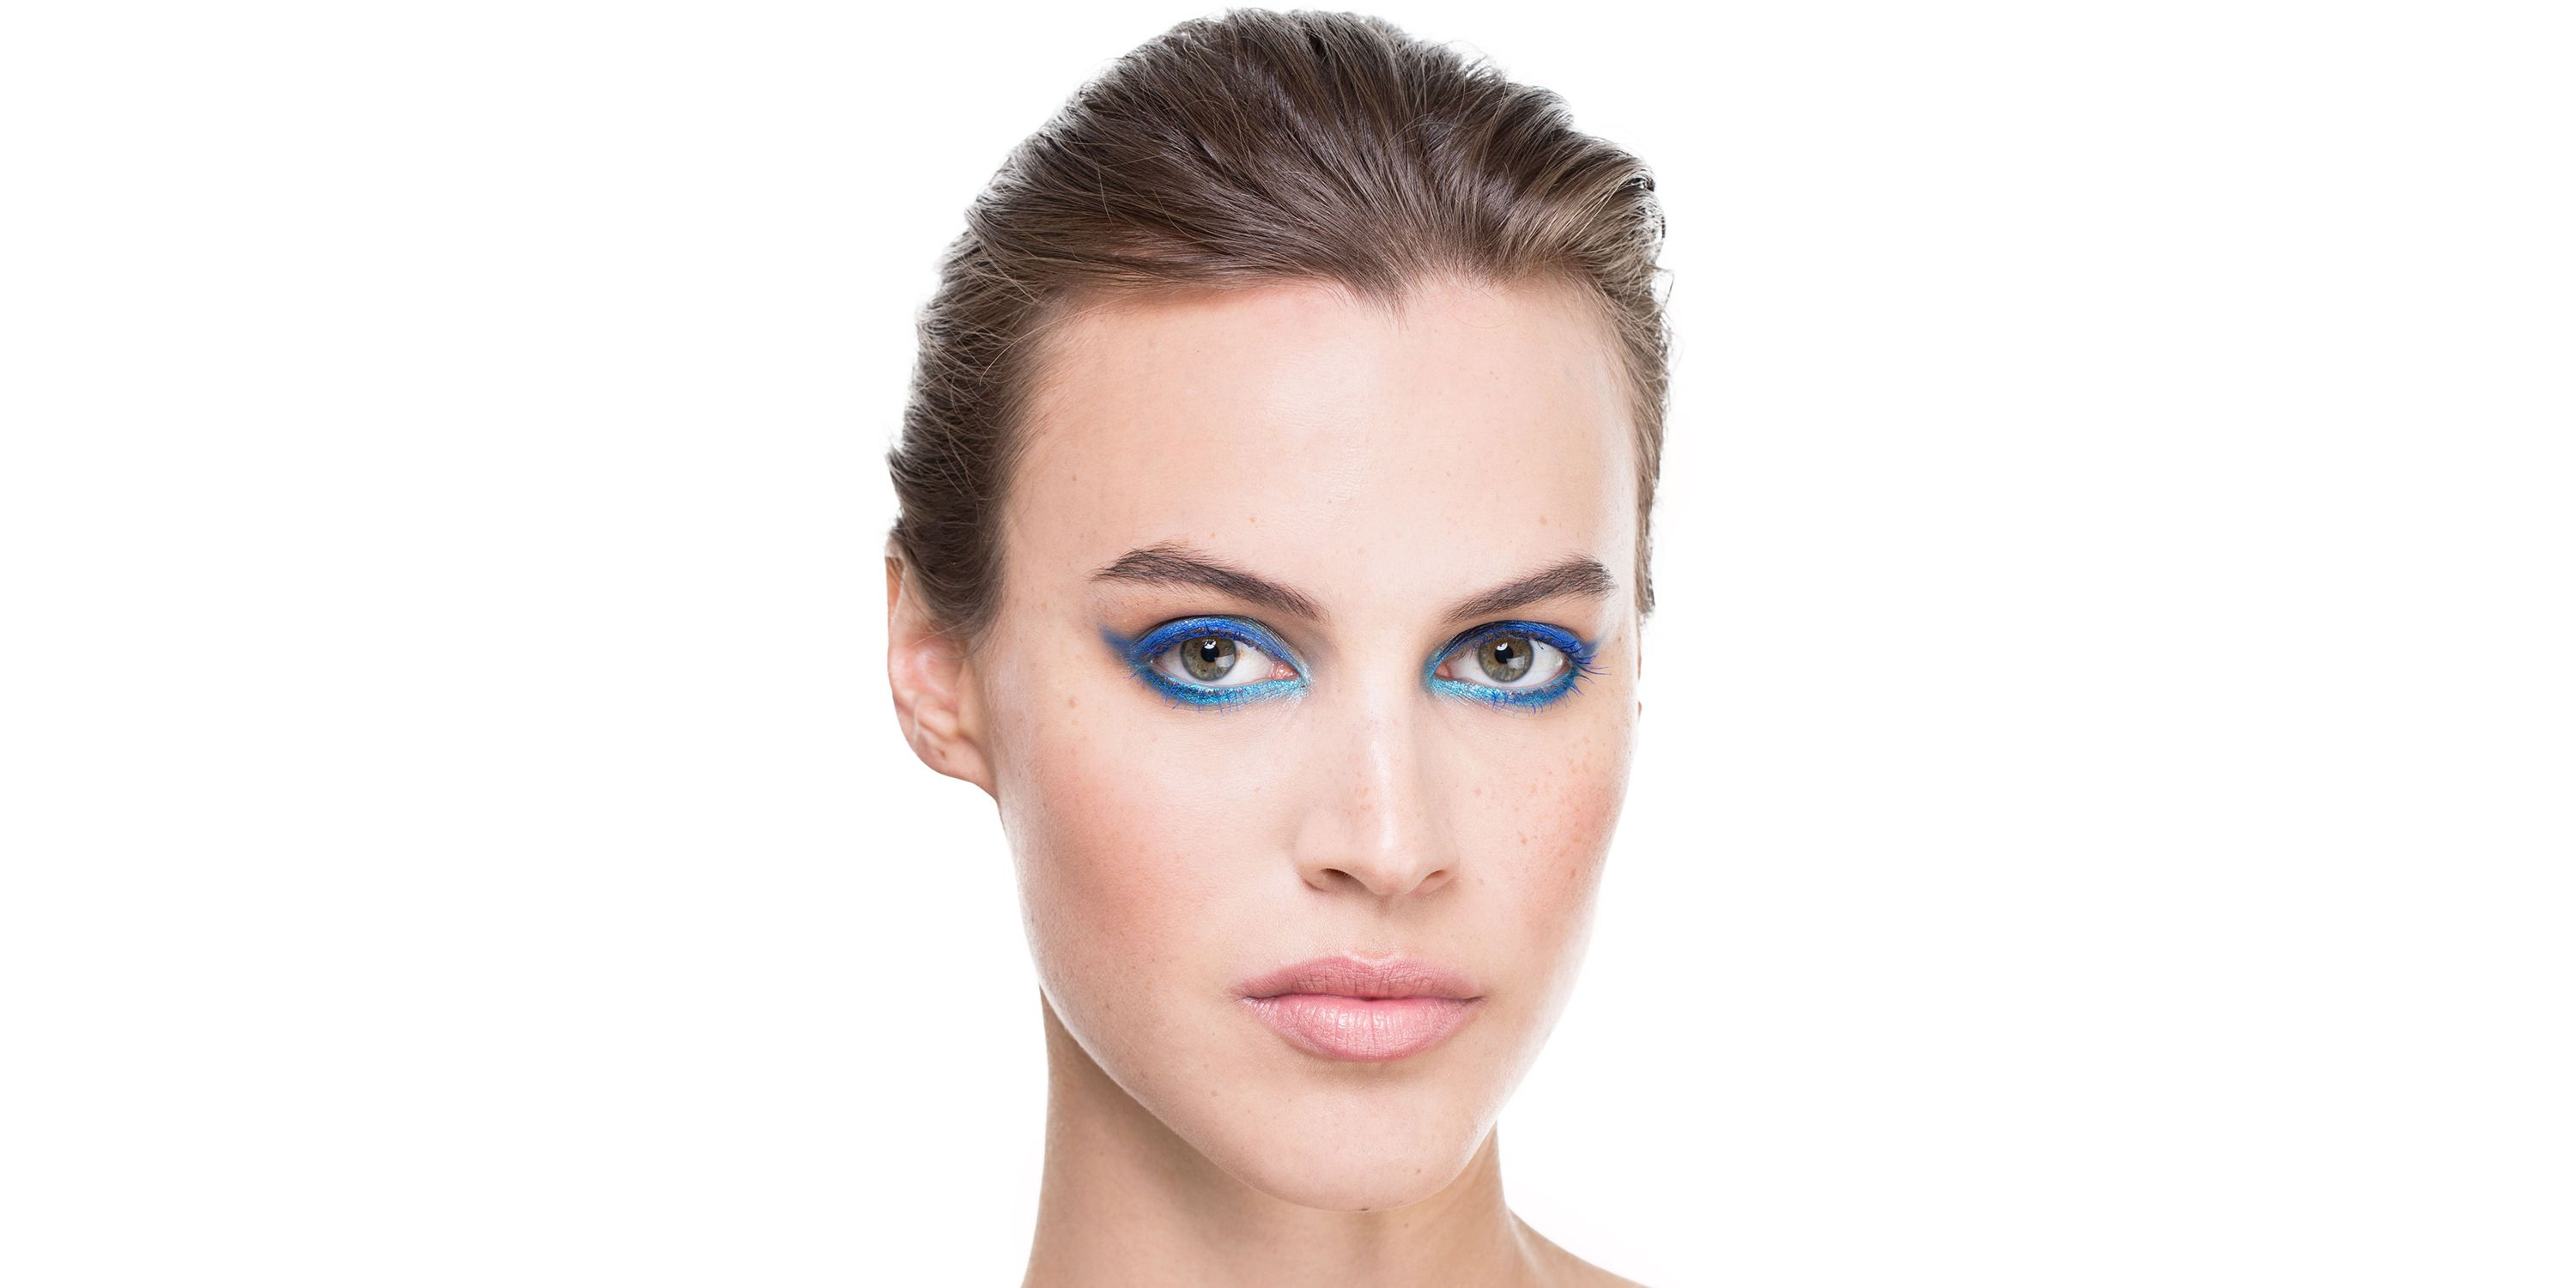 """Ocean-blue eyes always feel right on summer vacation. Taking a cue from <a target=""""_blank"""" href=""""http://www.harpersbazaar.com/beauty/makeup/advice/g4389/best-makeup-runway-trends-spring-2015/?slide=27"""">Elie Saab Spring 2015</a>, Olivier lined the entire eye in light, bright blue, then blended and smudged a darker shade over it from the middle to the outside corners for rich dimension.   <strong>Products used: By Terry </strong>Crayon Khol Terrybly Color Eye Pencil in Royal Navy, $34, <a target=""""_blank"""" href=""""http://www.beauty.com/by-terry-crayon-khol-terrybly--color-eye-pencil-9--royal-navy/qxp495180"""">beauty.com</a>; <strong>Rimmel London </strong>Scandaleyes Shadow Stick in Tempting Turquoise, $4.50, <a target=""""_blank"""" href=""""http://www.drugstore.com/products/prod.asp?pid=473247&catid=183538&cmbProdBrandFilter=112163&aid=338666&aparam=473247&kpid=473247&CAWELAID=120142990000005392&CAGPSPN=pla&kpid=473247"""">drugstore.com</a>; <strong>Dior</strong> Diorshow Mascara in Catwalk Blue, $25, <a target=""""_blank"""" href=""""http://www.sephora.com/diorshow-mascara-P40404?skuId=710459"""">sephora.com</a>."""